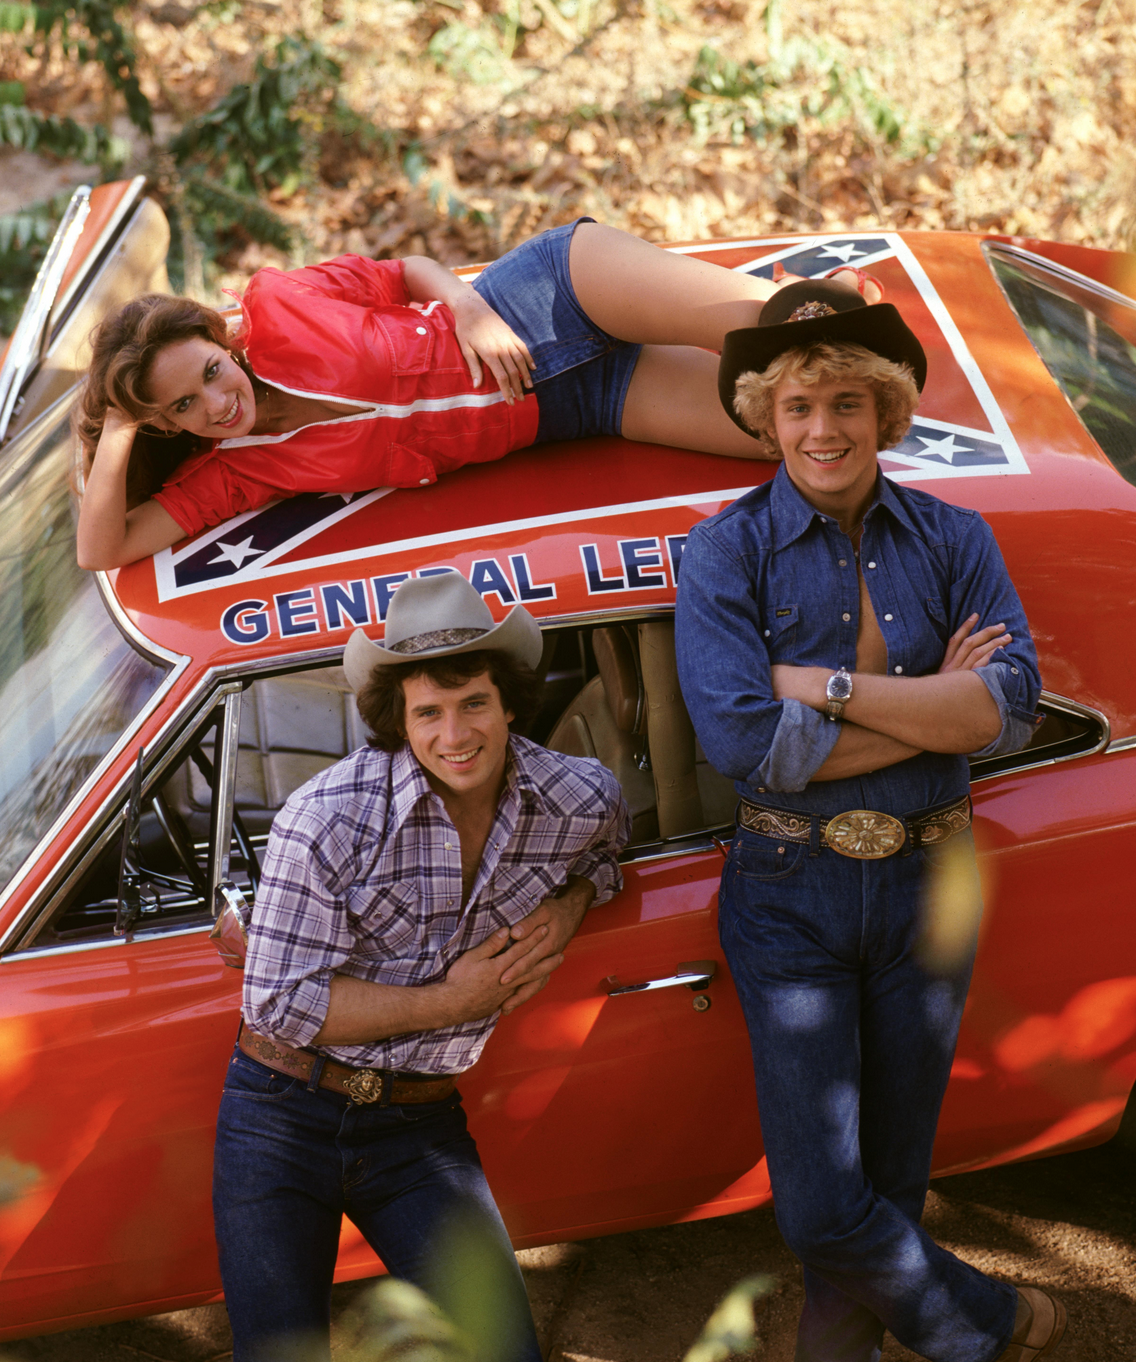 dukes of hazzard the beginning unrated full movie online free